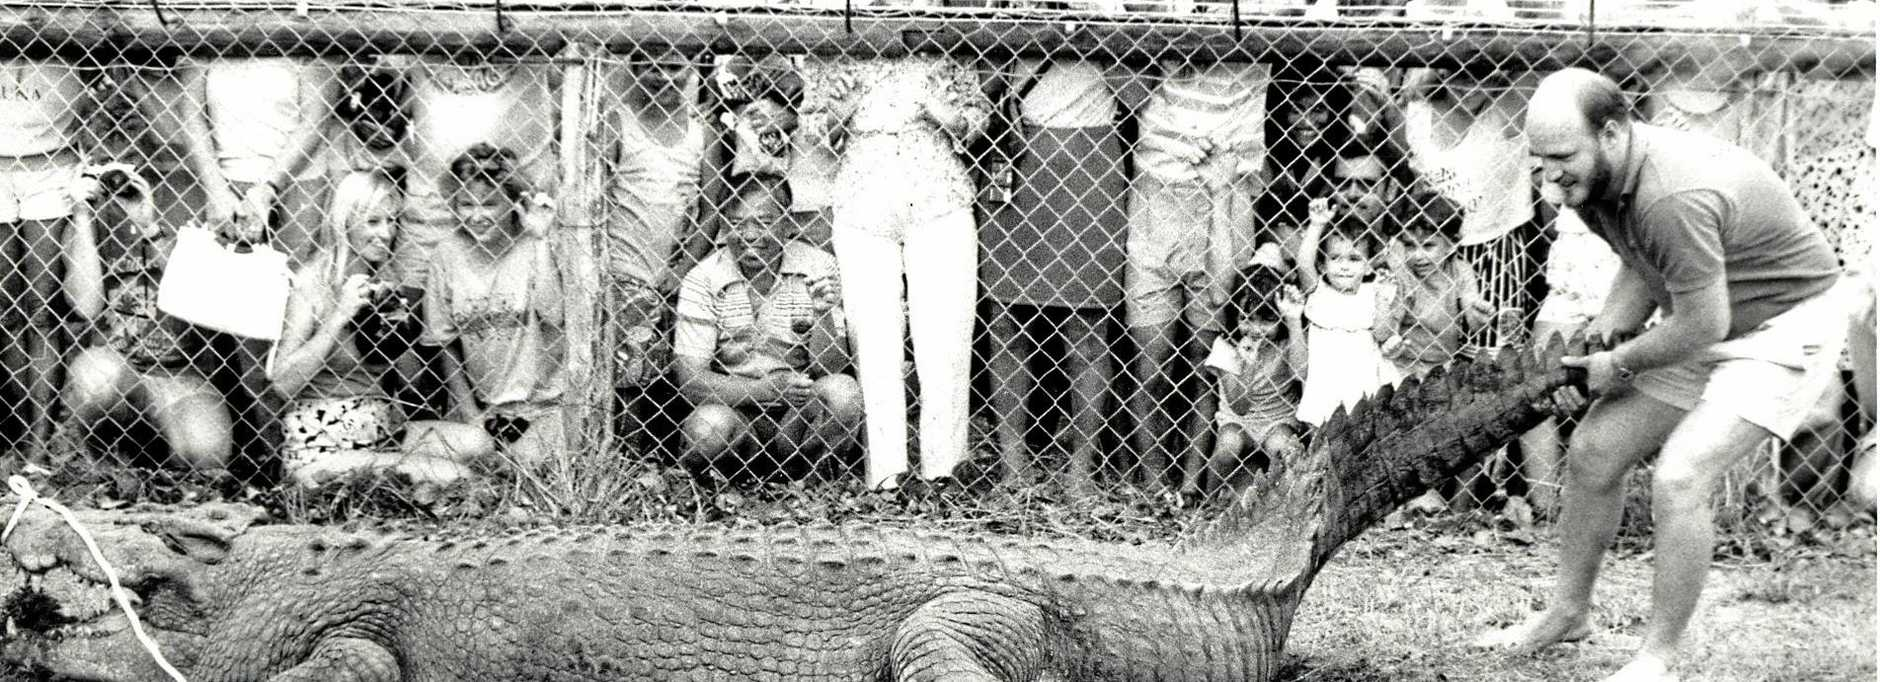 A hug 5.3 metre crocodile rolls and twists with open jaws as Simon Lever attempts to release it into a pond at Koorana Crocodile Farm in January, 1989.